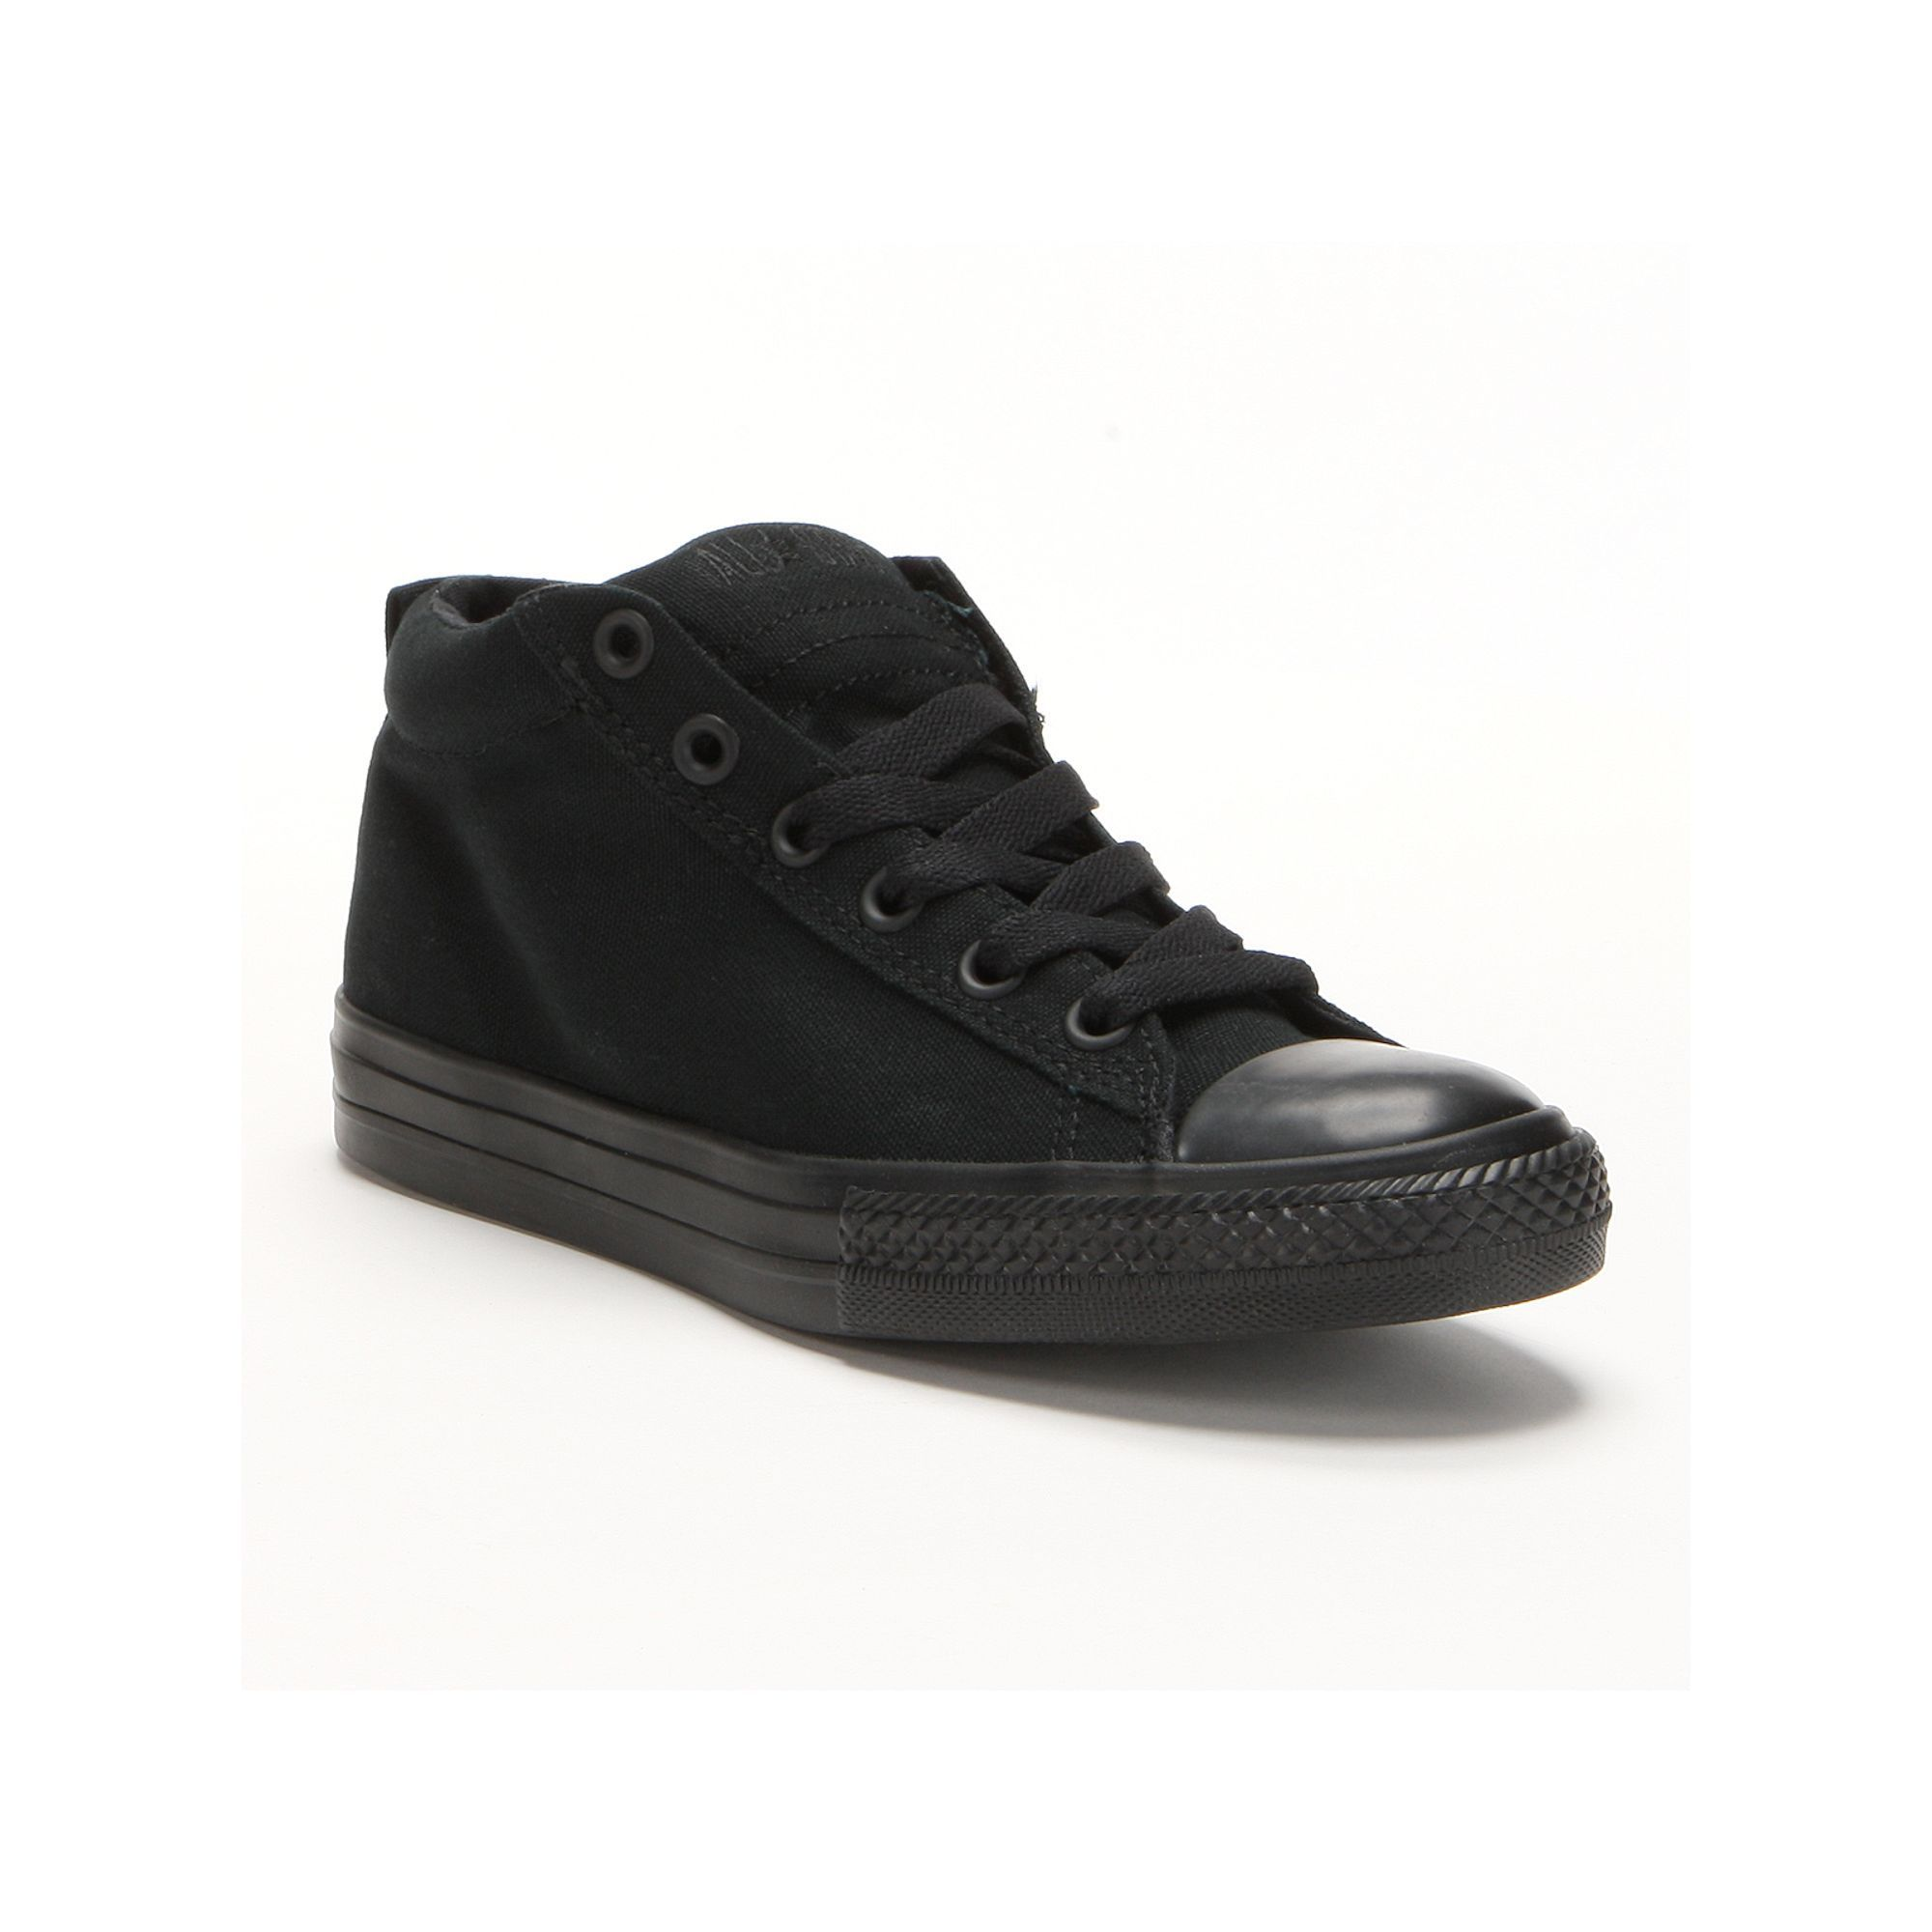 421dae7c6334 Kid s Converse Chuck Taylor All Star Street Cab Mid-Top Sneakers ...